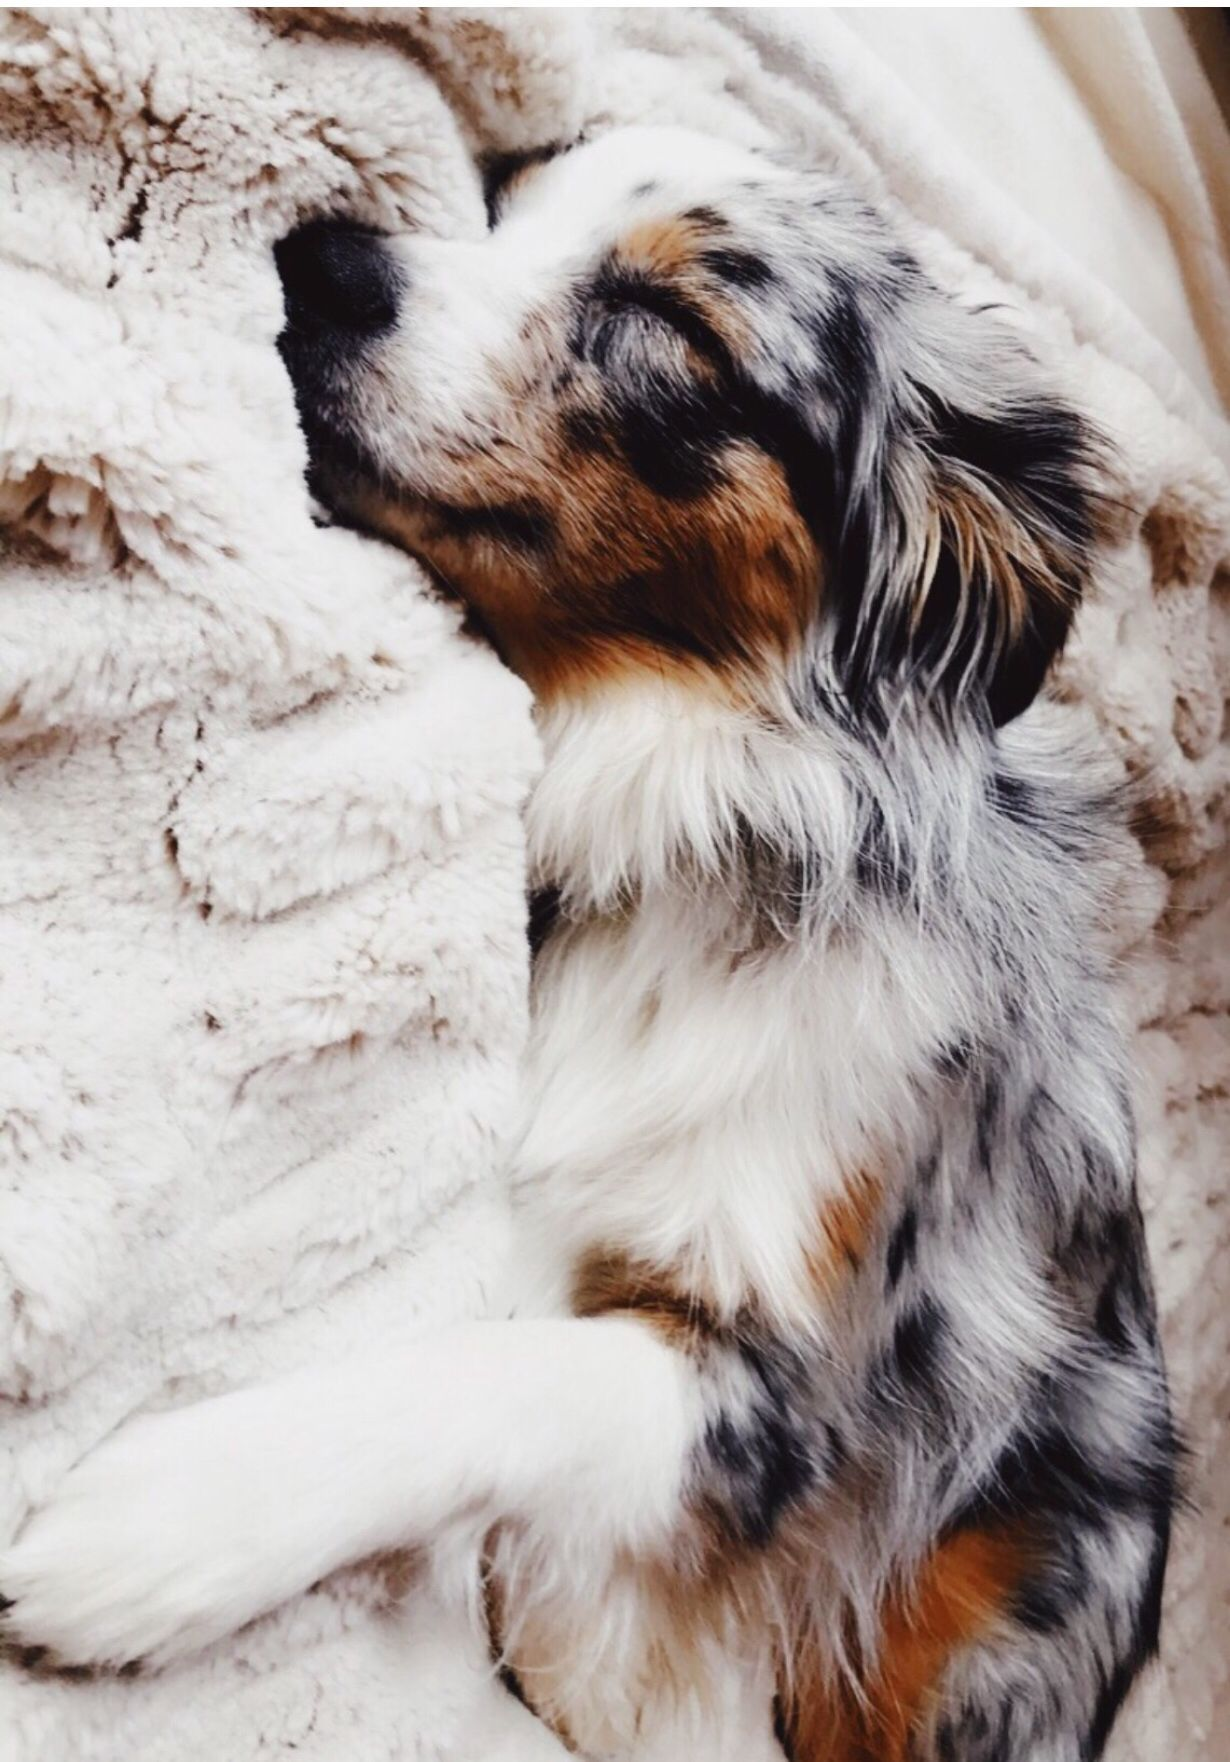 Pin By Sareena Yasmin On Cute Animals In 2020 Cute Animals Australian Shepherd Dogs Cute Dogs